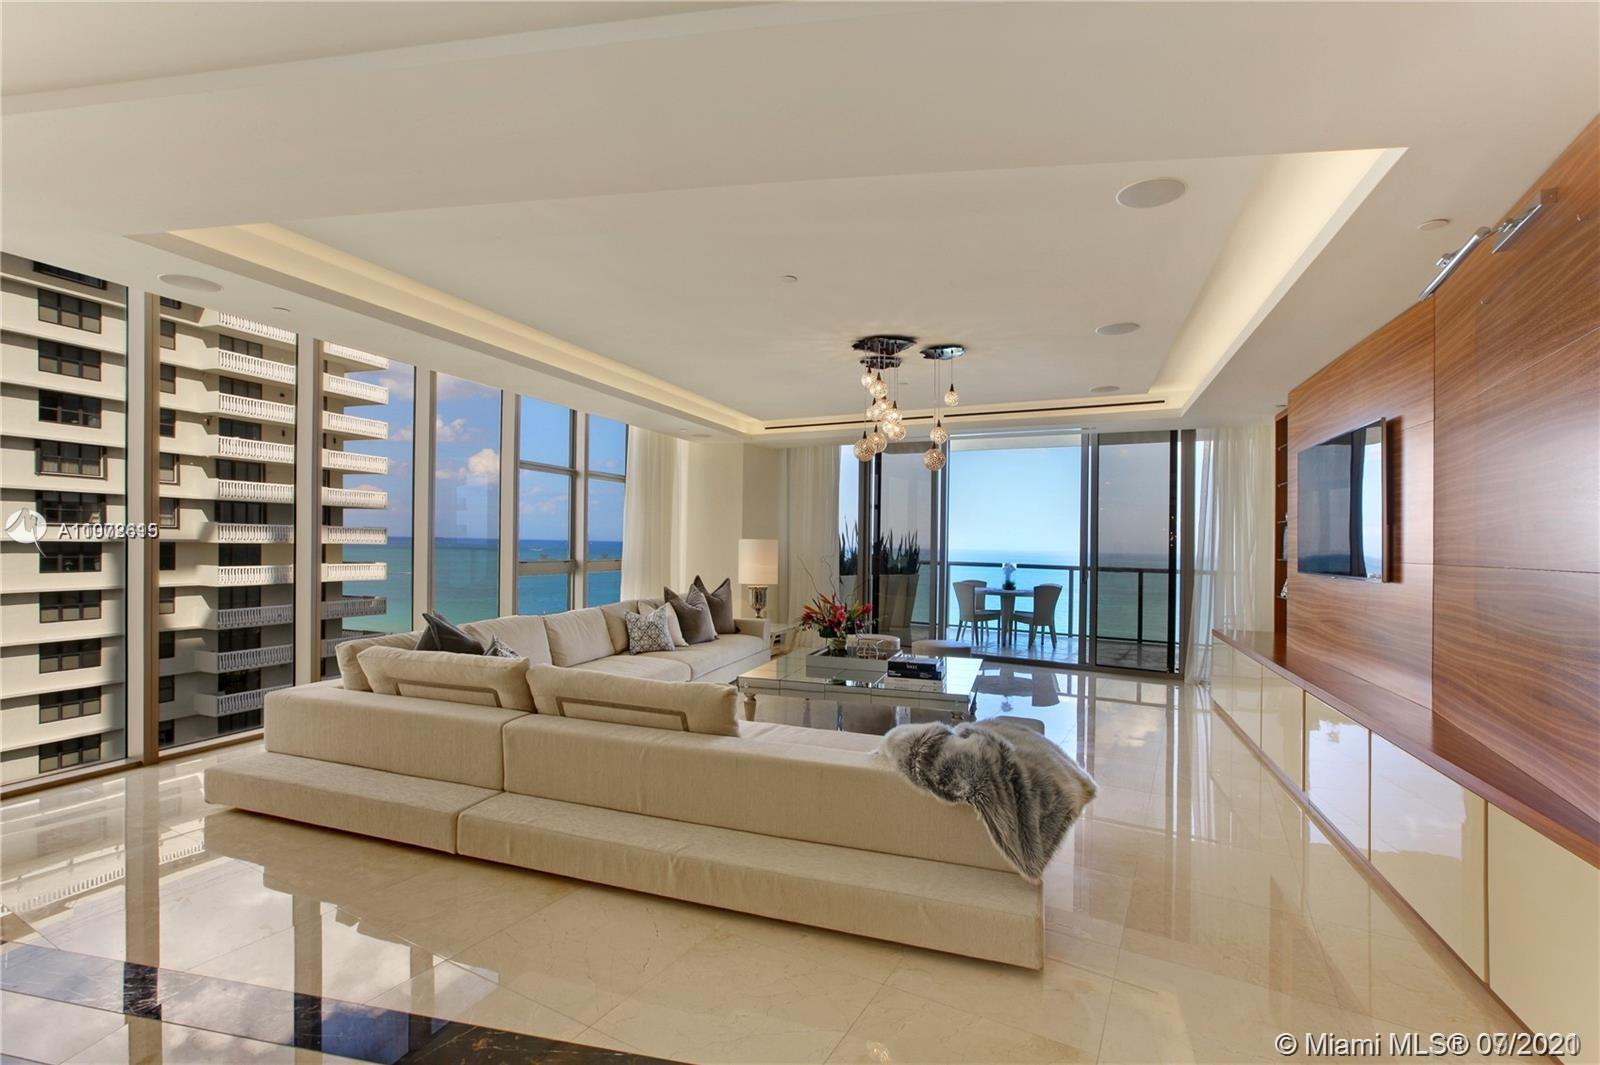 9705 Collins Ave, Unit #1001N Luxury Real Estate